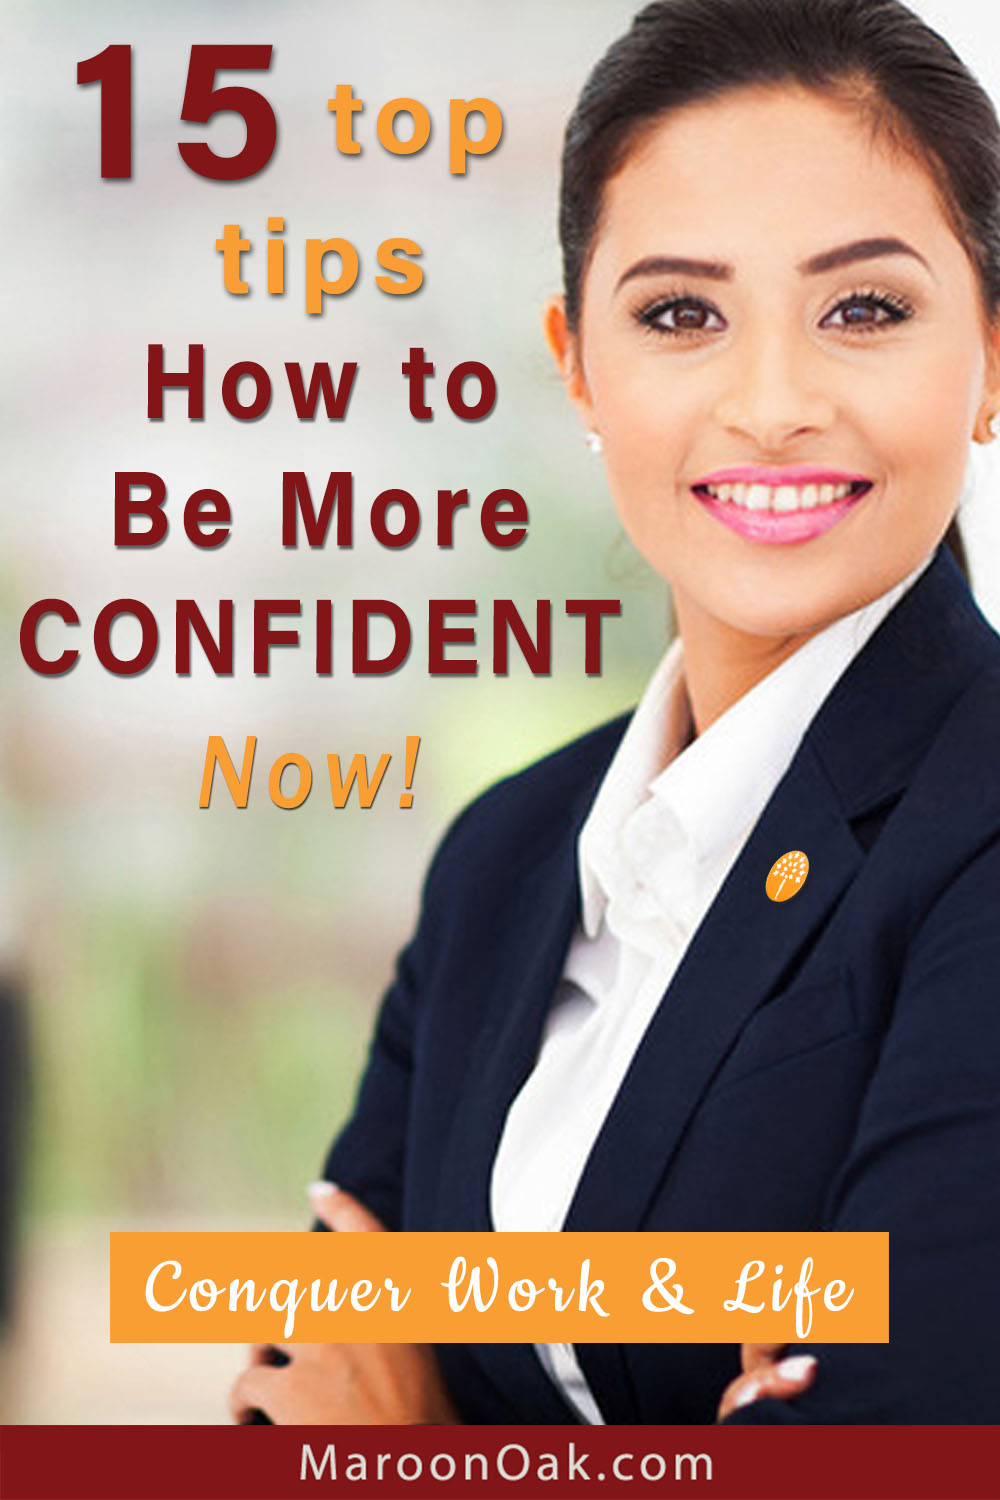 Does your lack of confidence hamper your success? Are you wondering how to be more confident at work or home? Let your self-belief be your greatest asset! These 15 awesome ways can guide you on your journey!